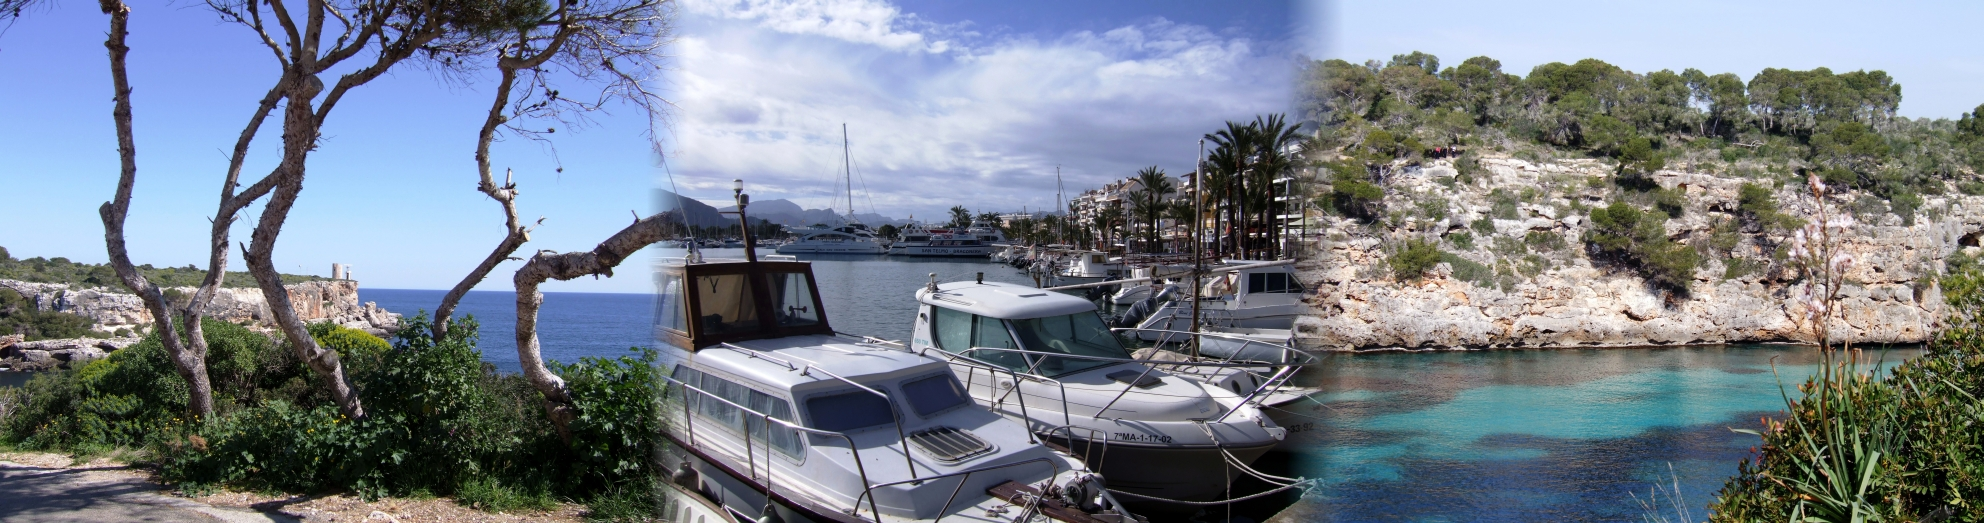 images/slideshow//pan17/mallorca7.jpg